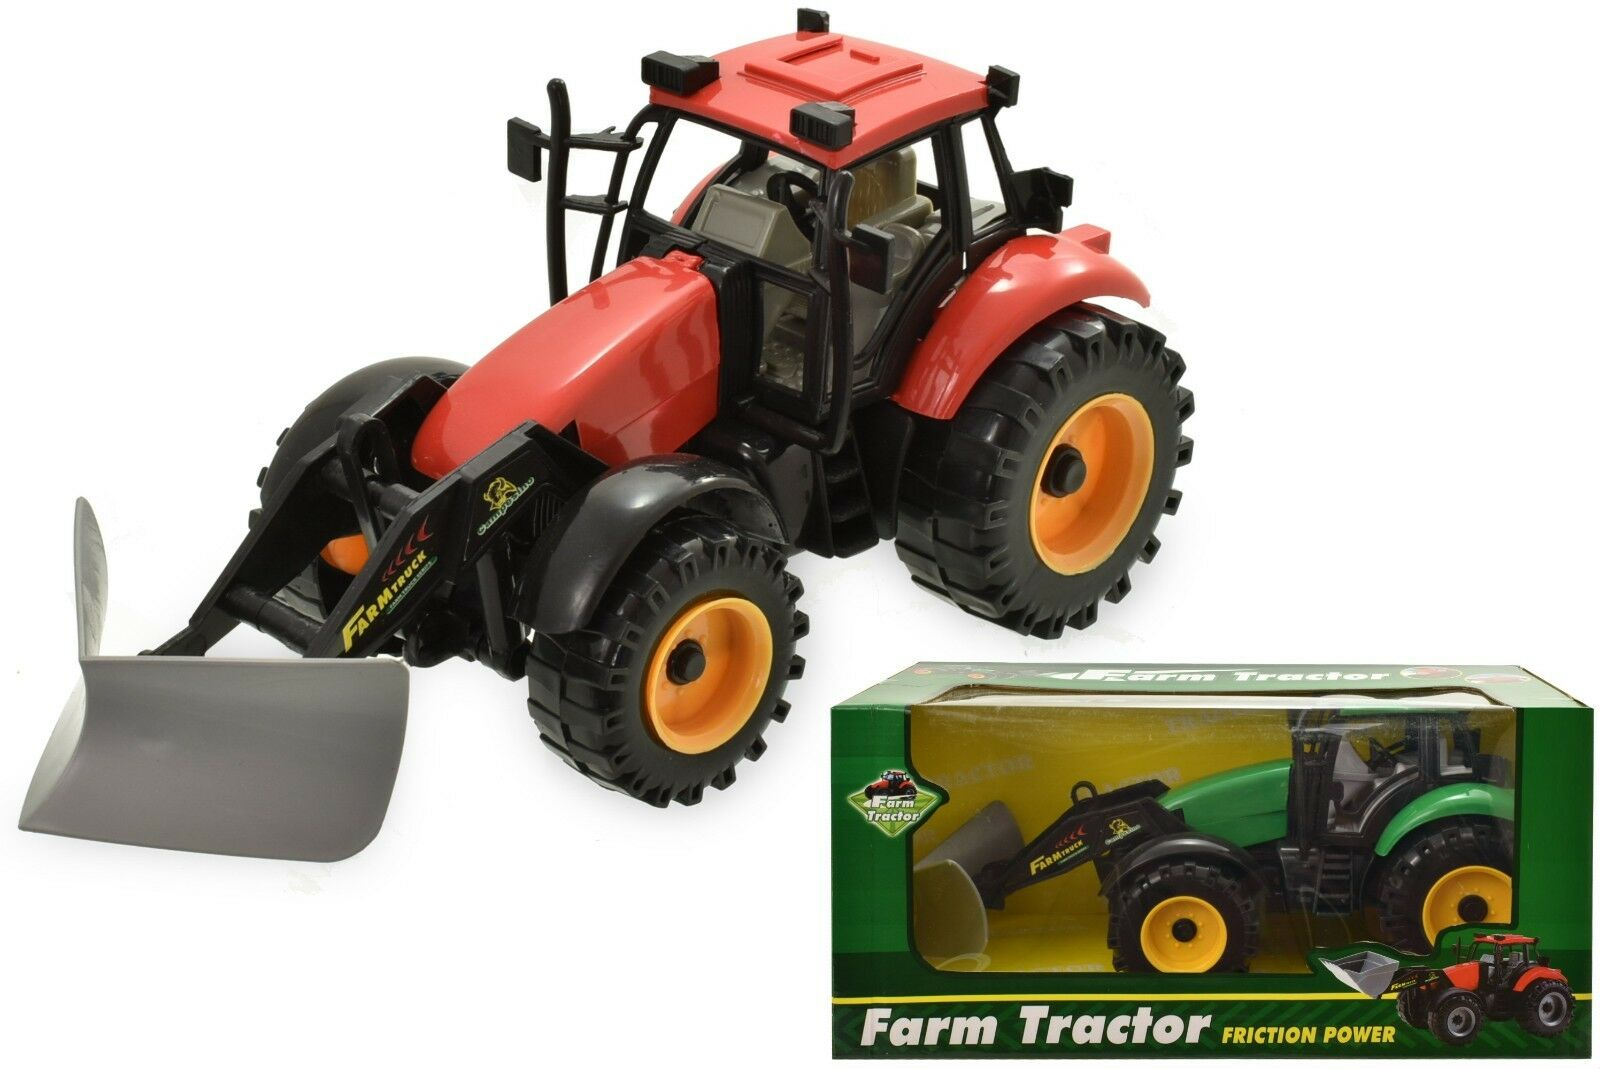 New 25cm Friction Powered Farm Tractors Farming Toy Perfect Gift For Kids